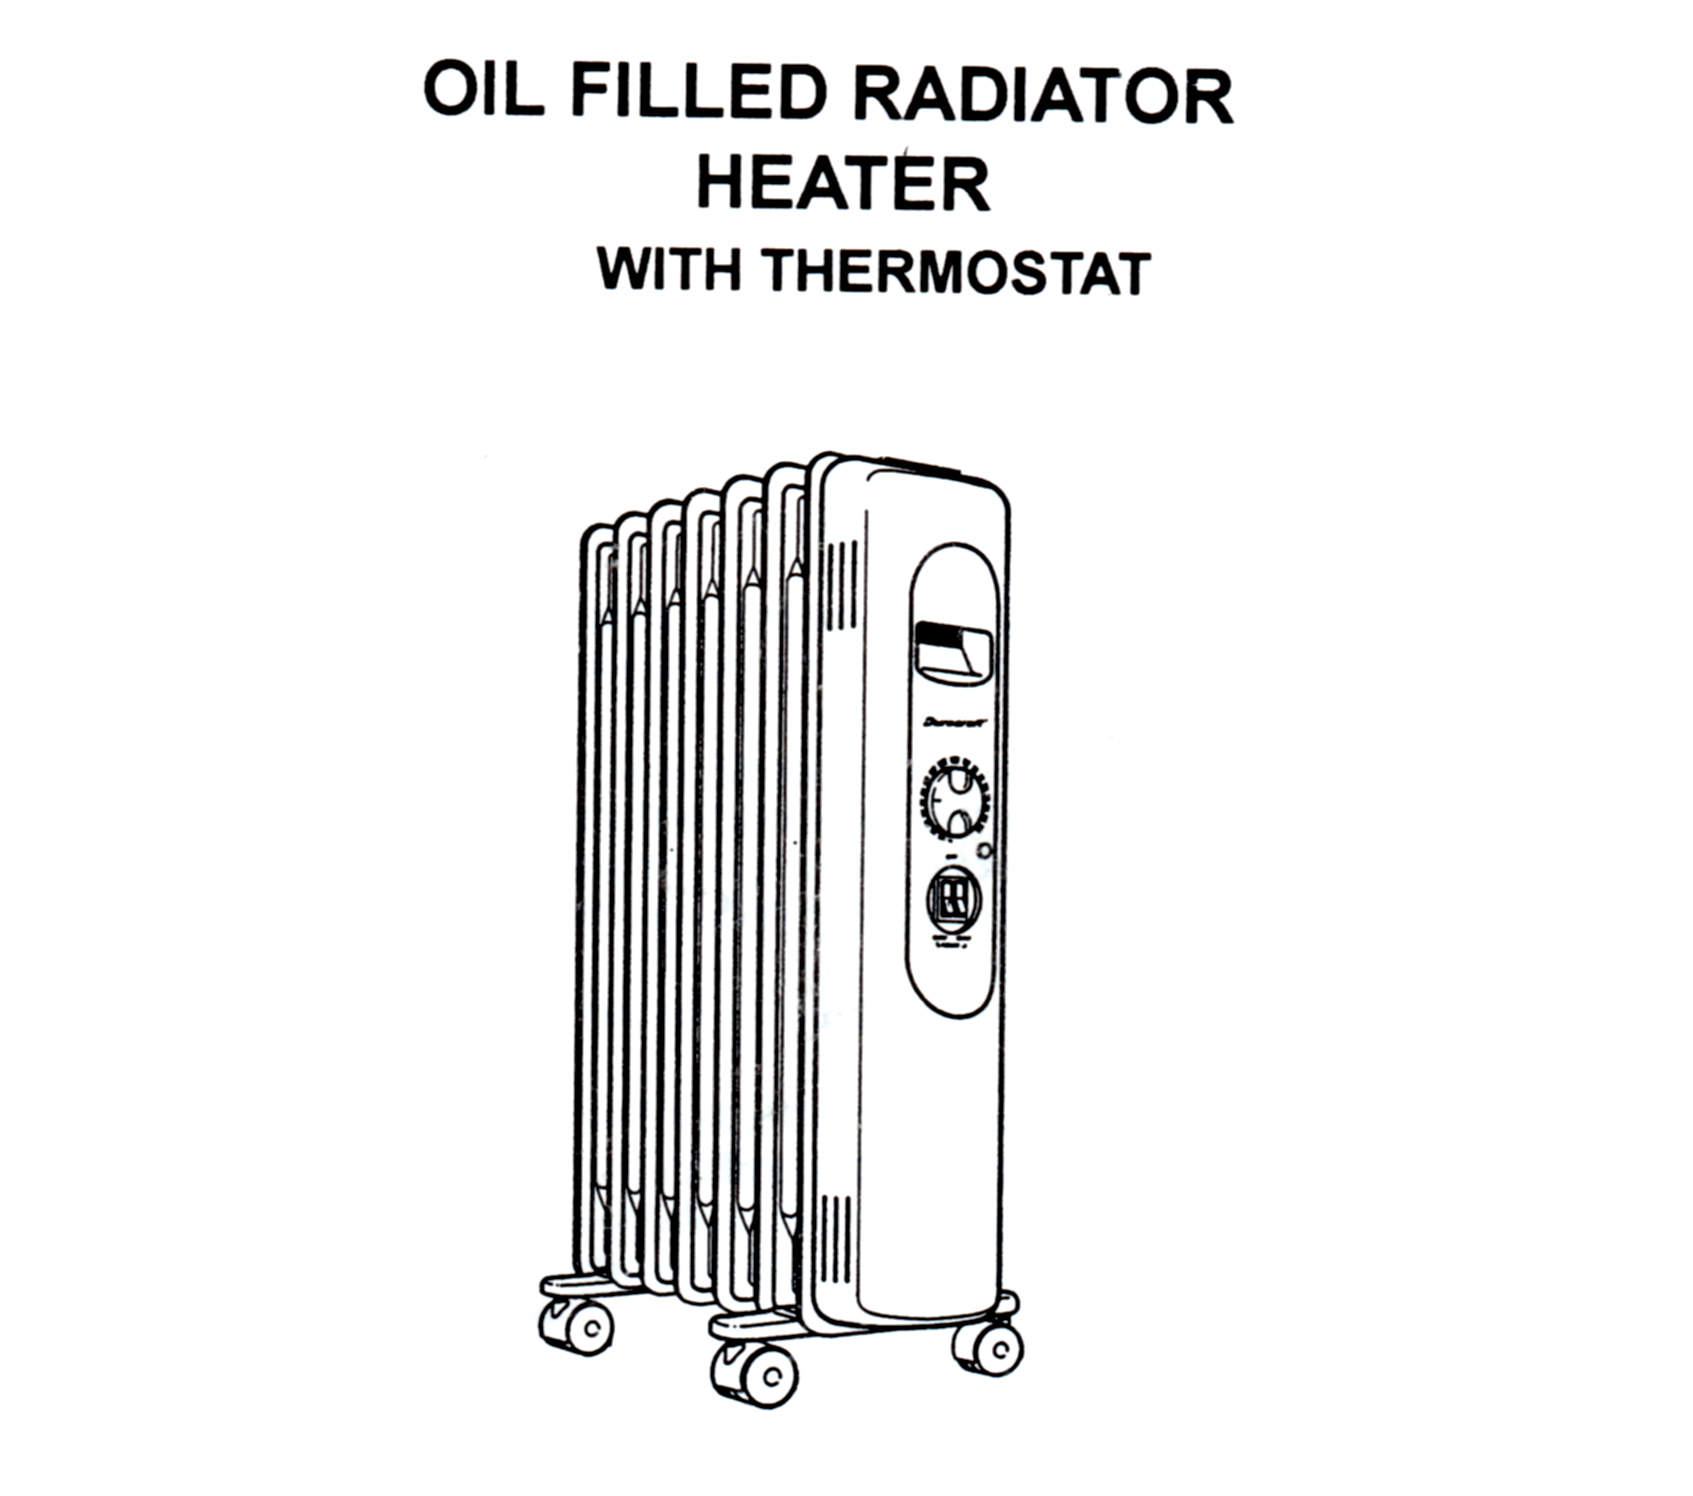 Duracraft Oil Filled Radiator Heater Model CZ-600 Owner's